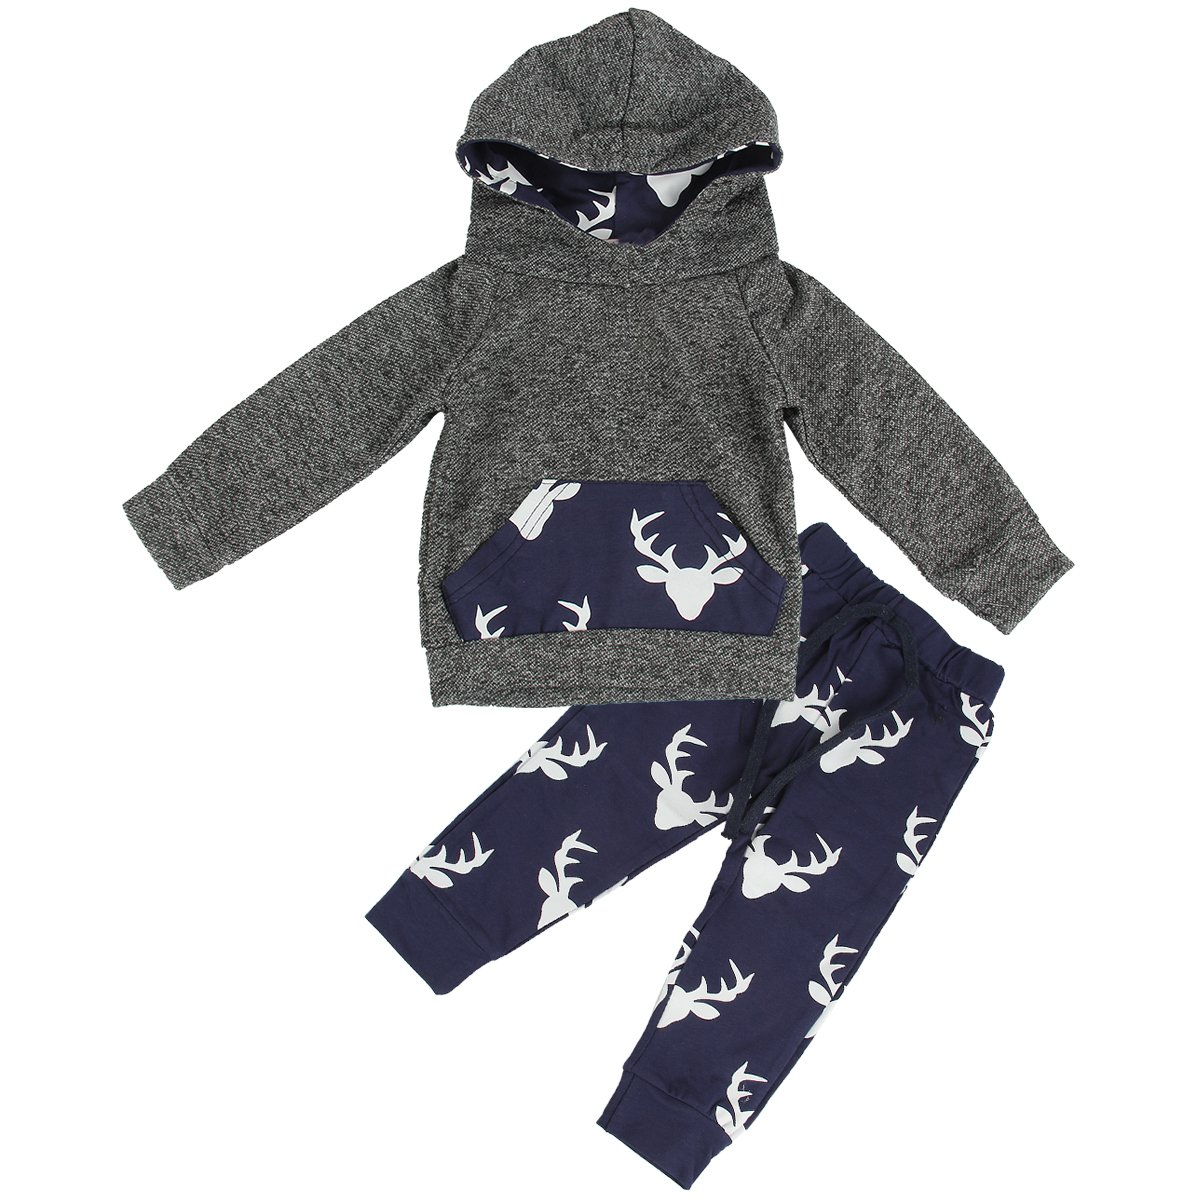 puseky Toddler Baby Boys Grils Elk Deer Hooded Shirt+Pants Outfits Clothes Set